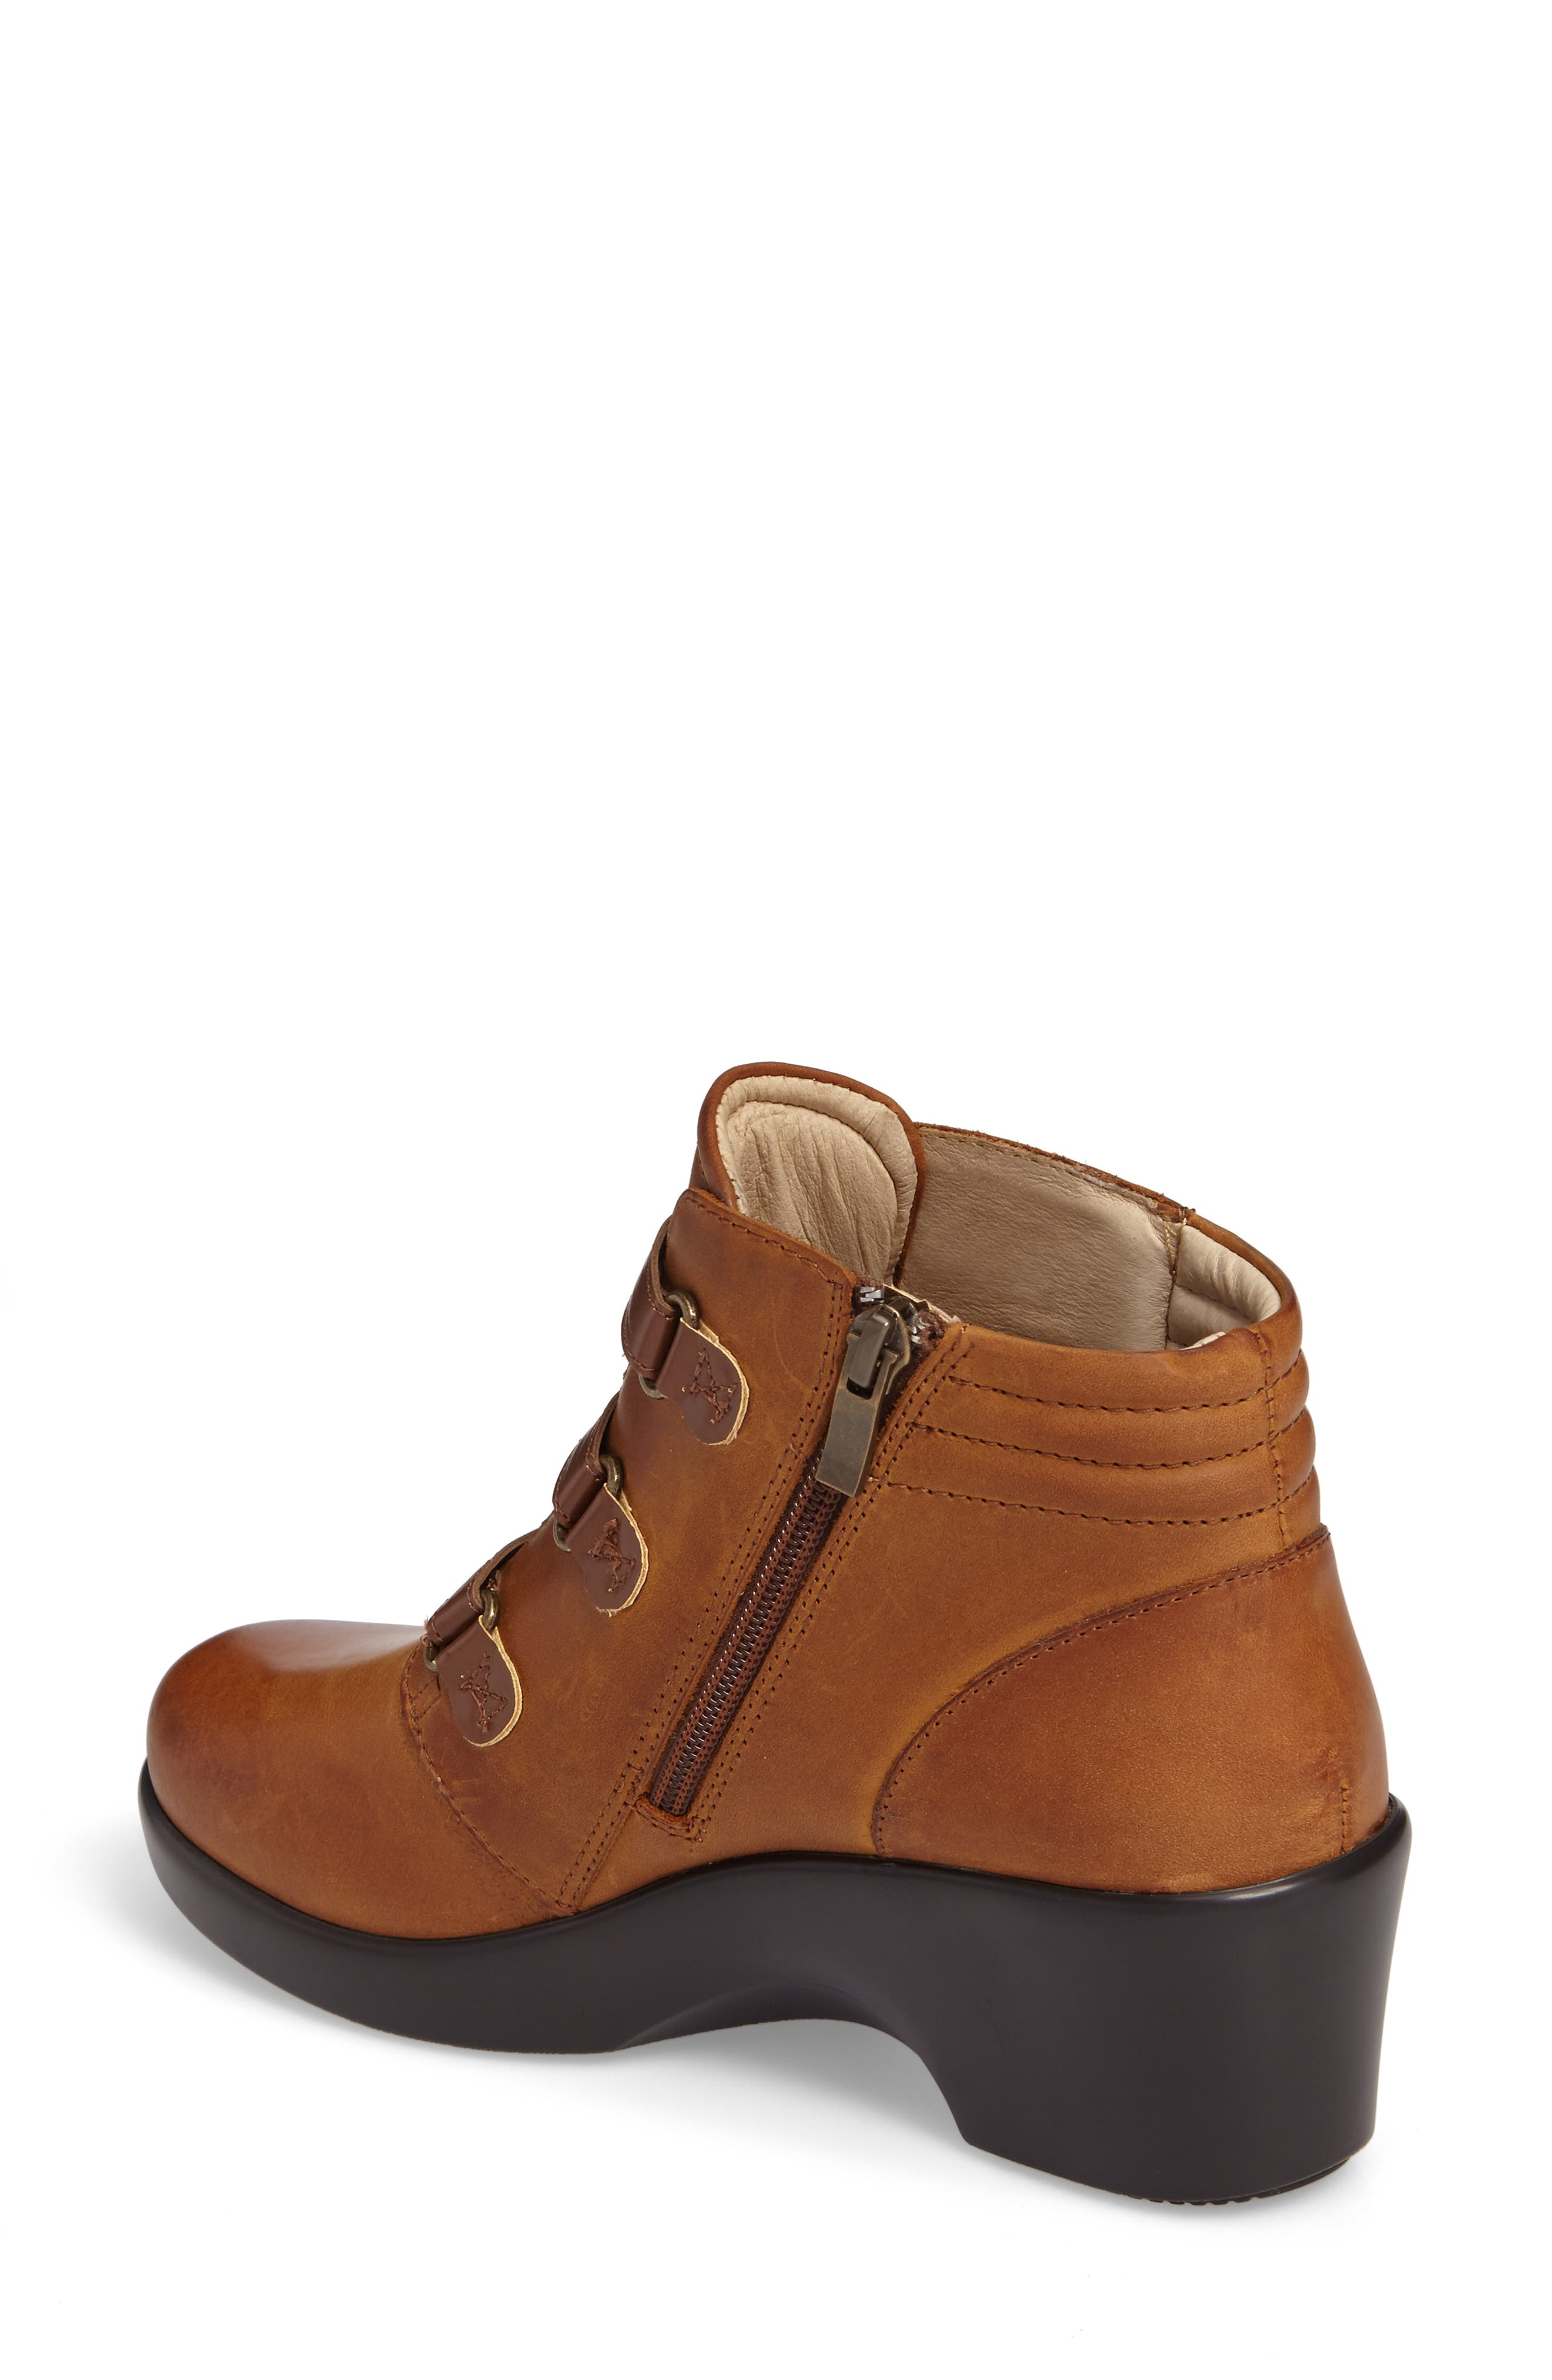 Indi Demi Wedge Bootie,                             Alternate thumbnail 2, color,                             Walnut Leather